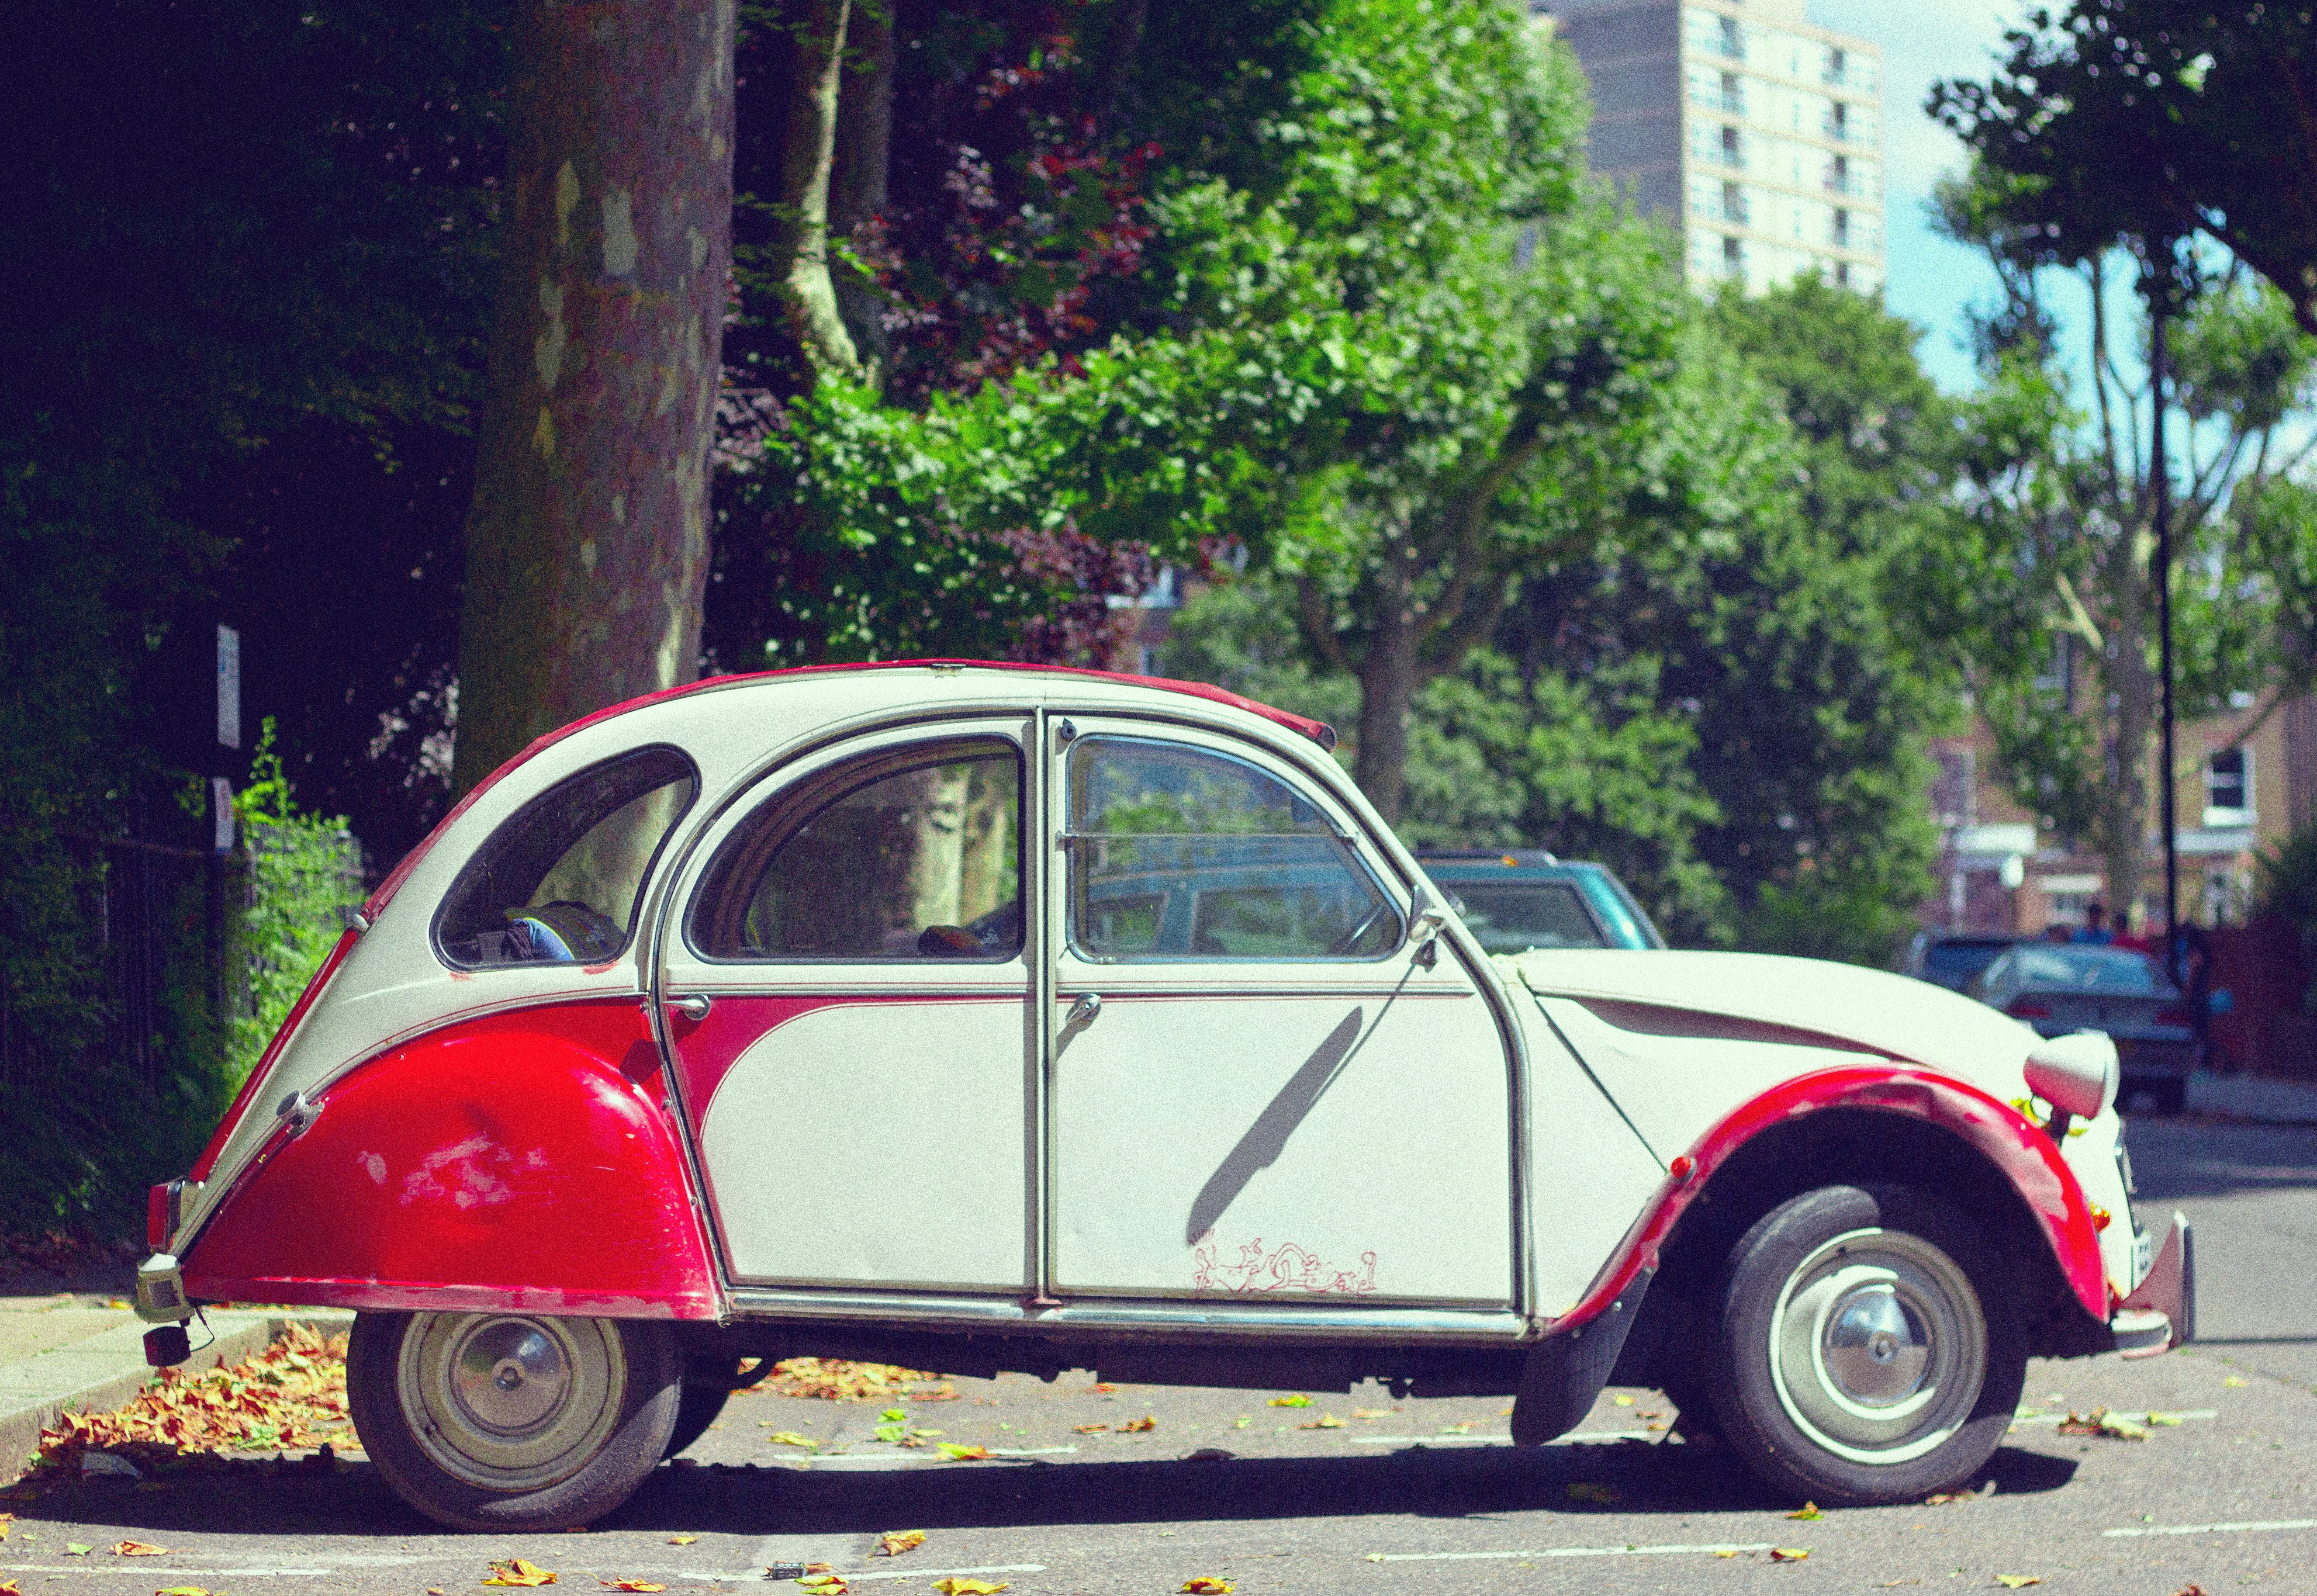 Free stock photo of street, car, vintage, old